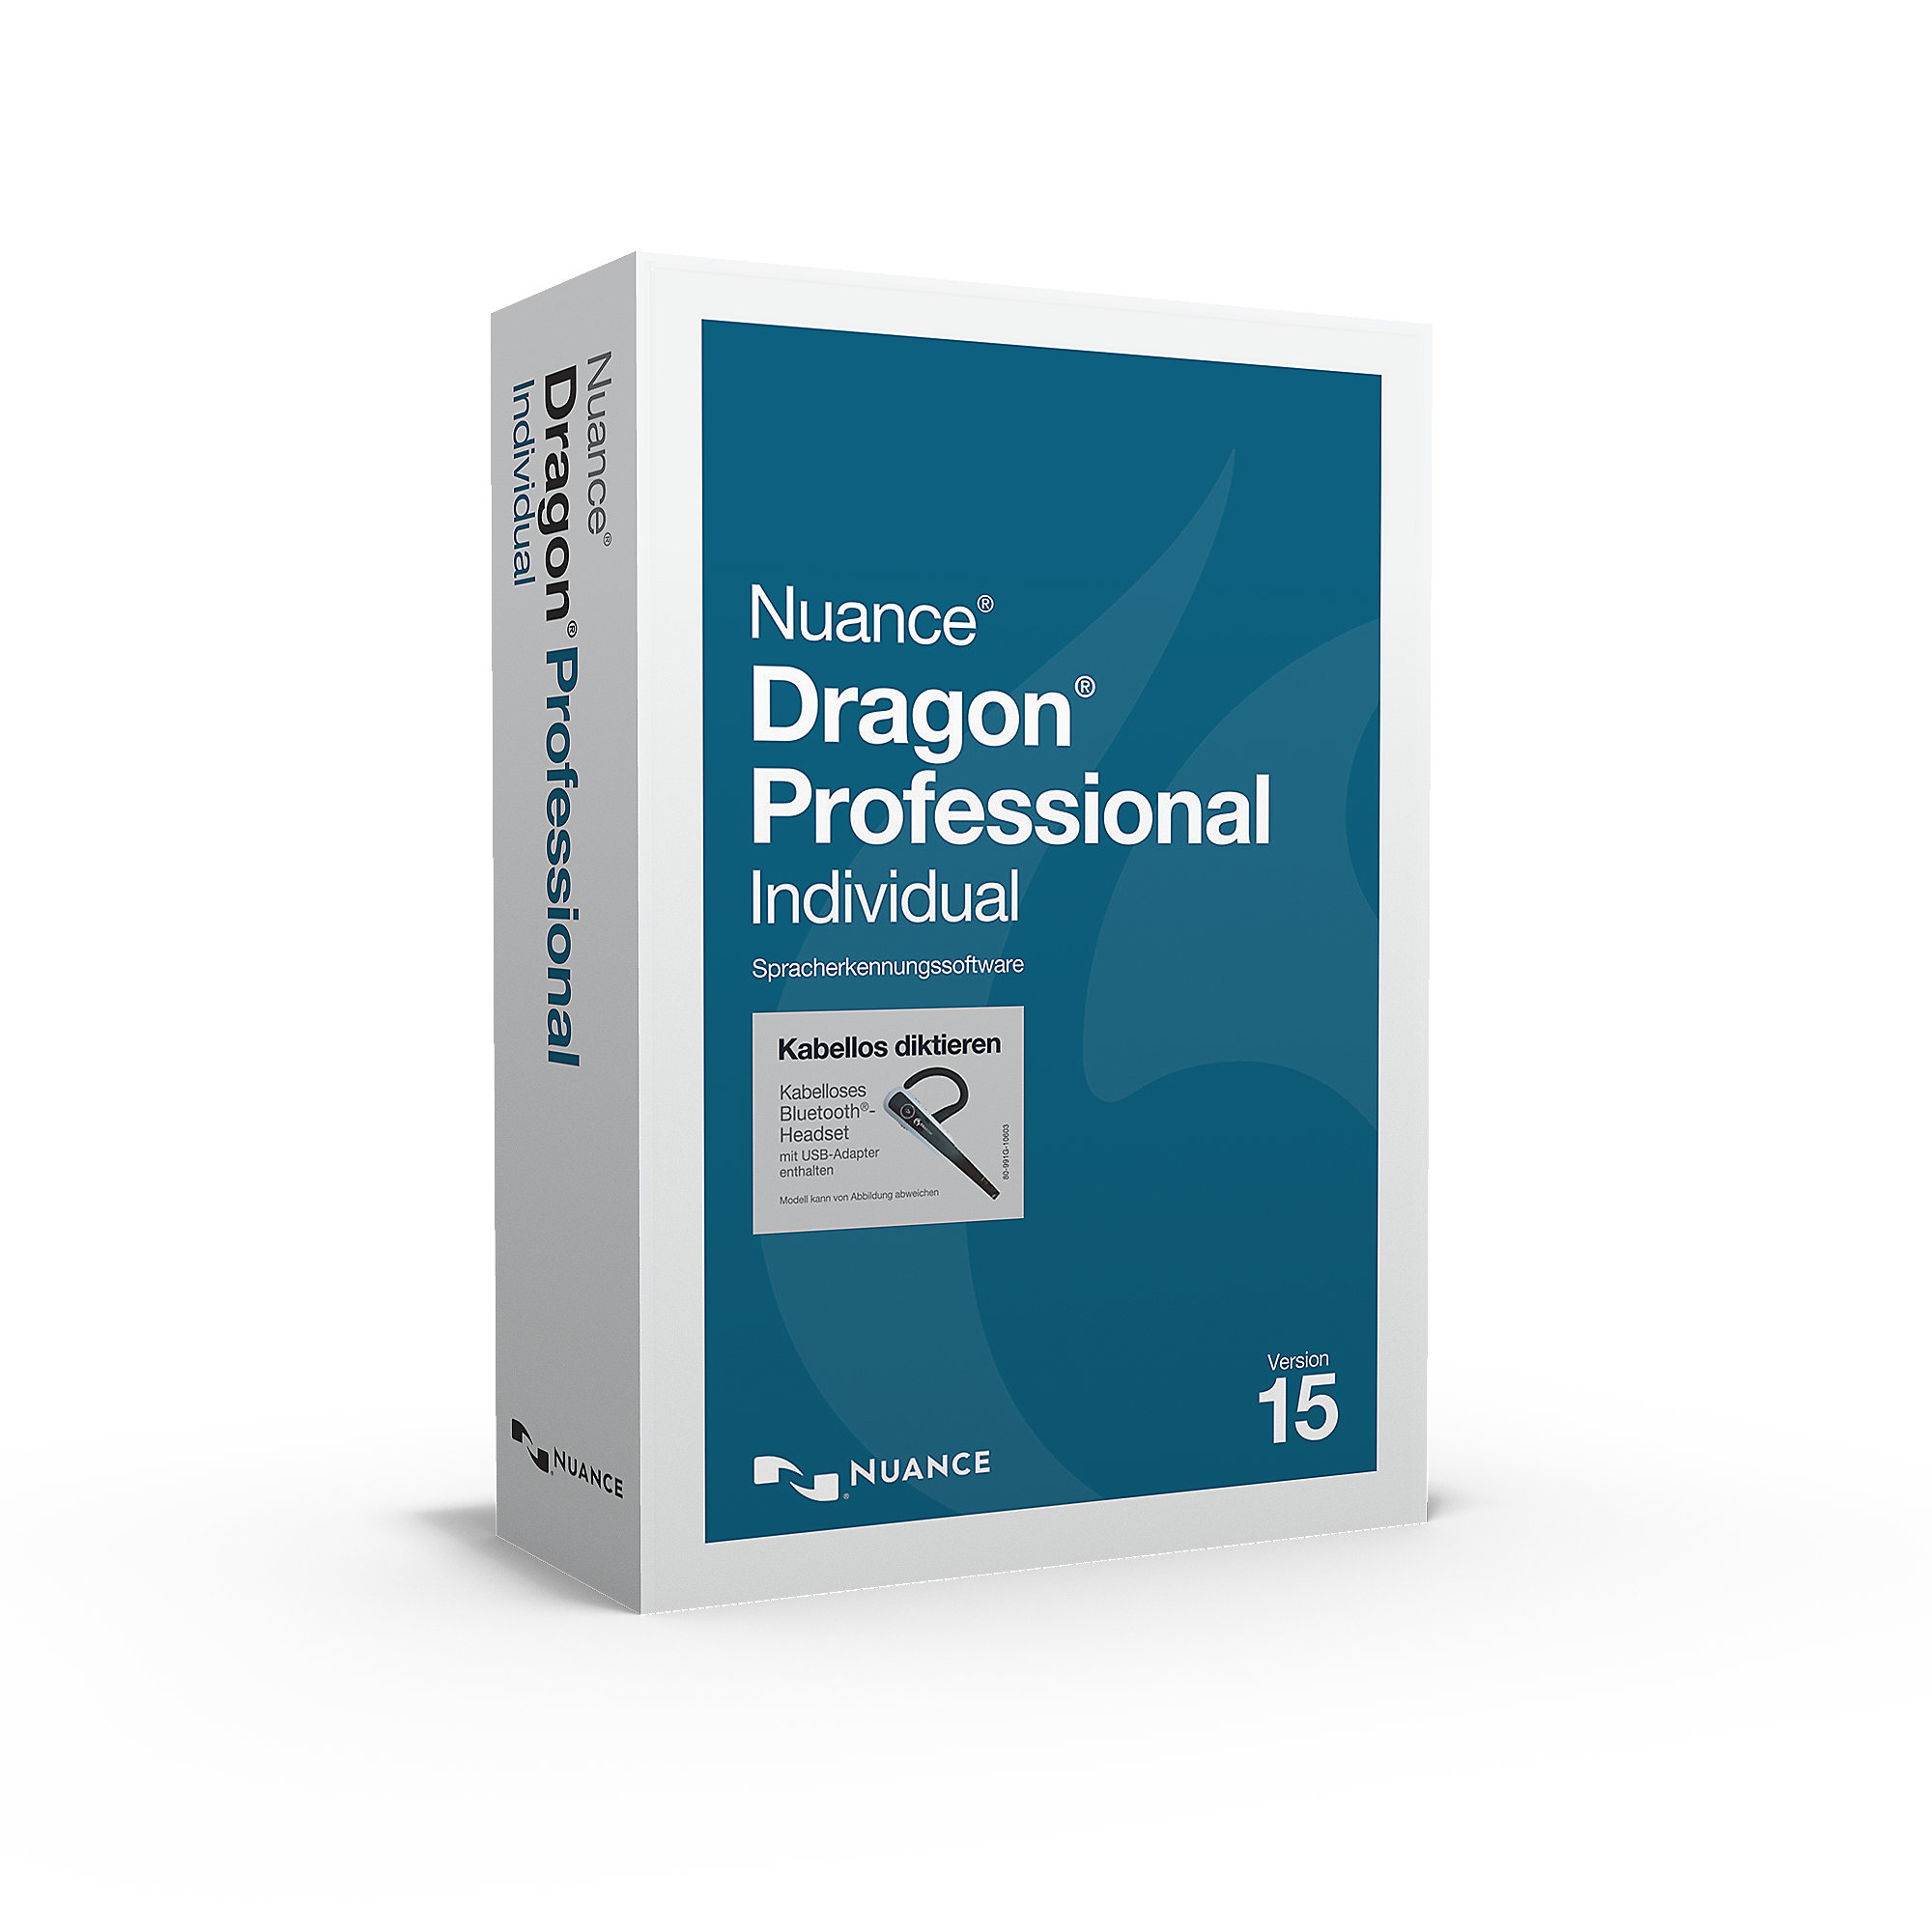 Nuance Dragon Professional Individual Wireless V.15 Box